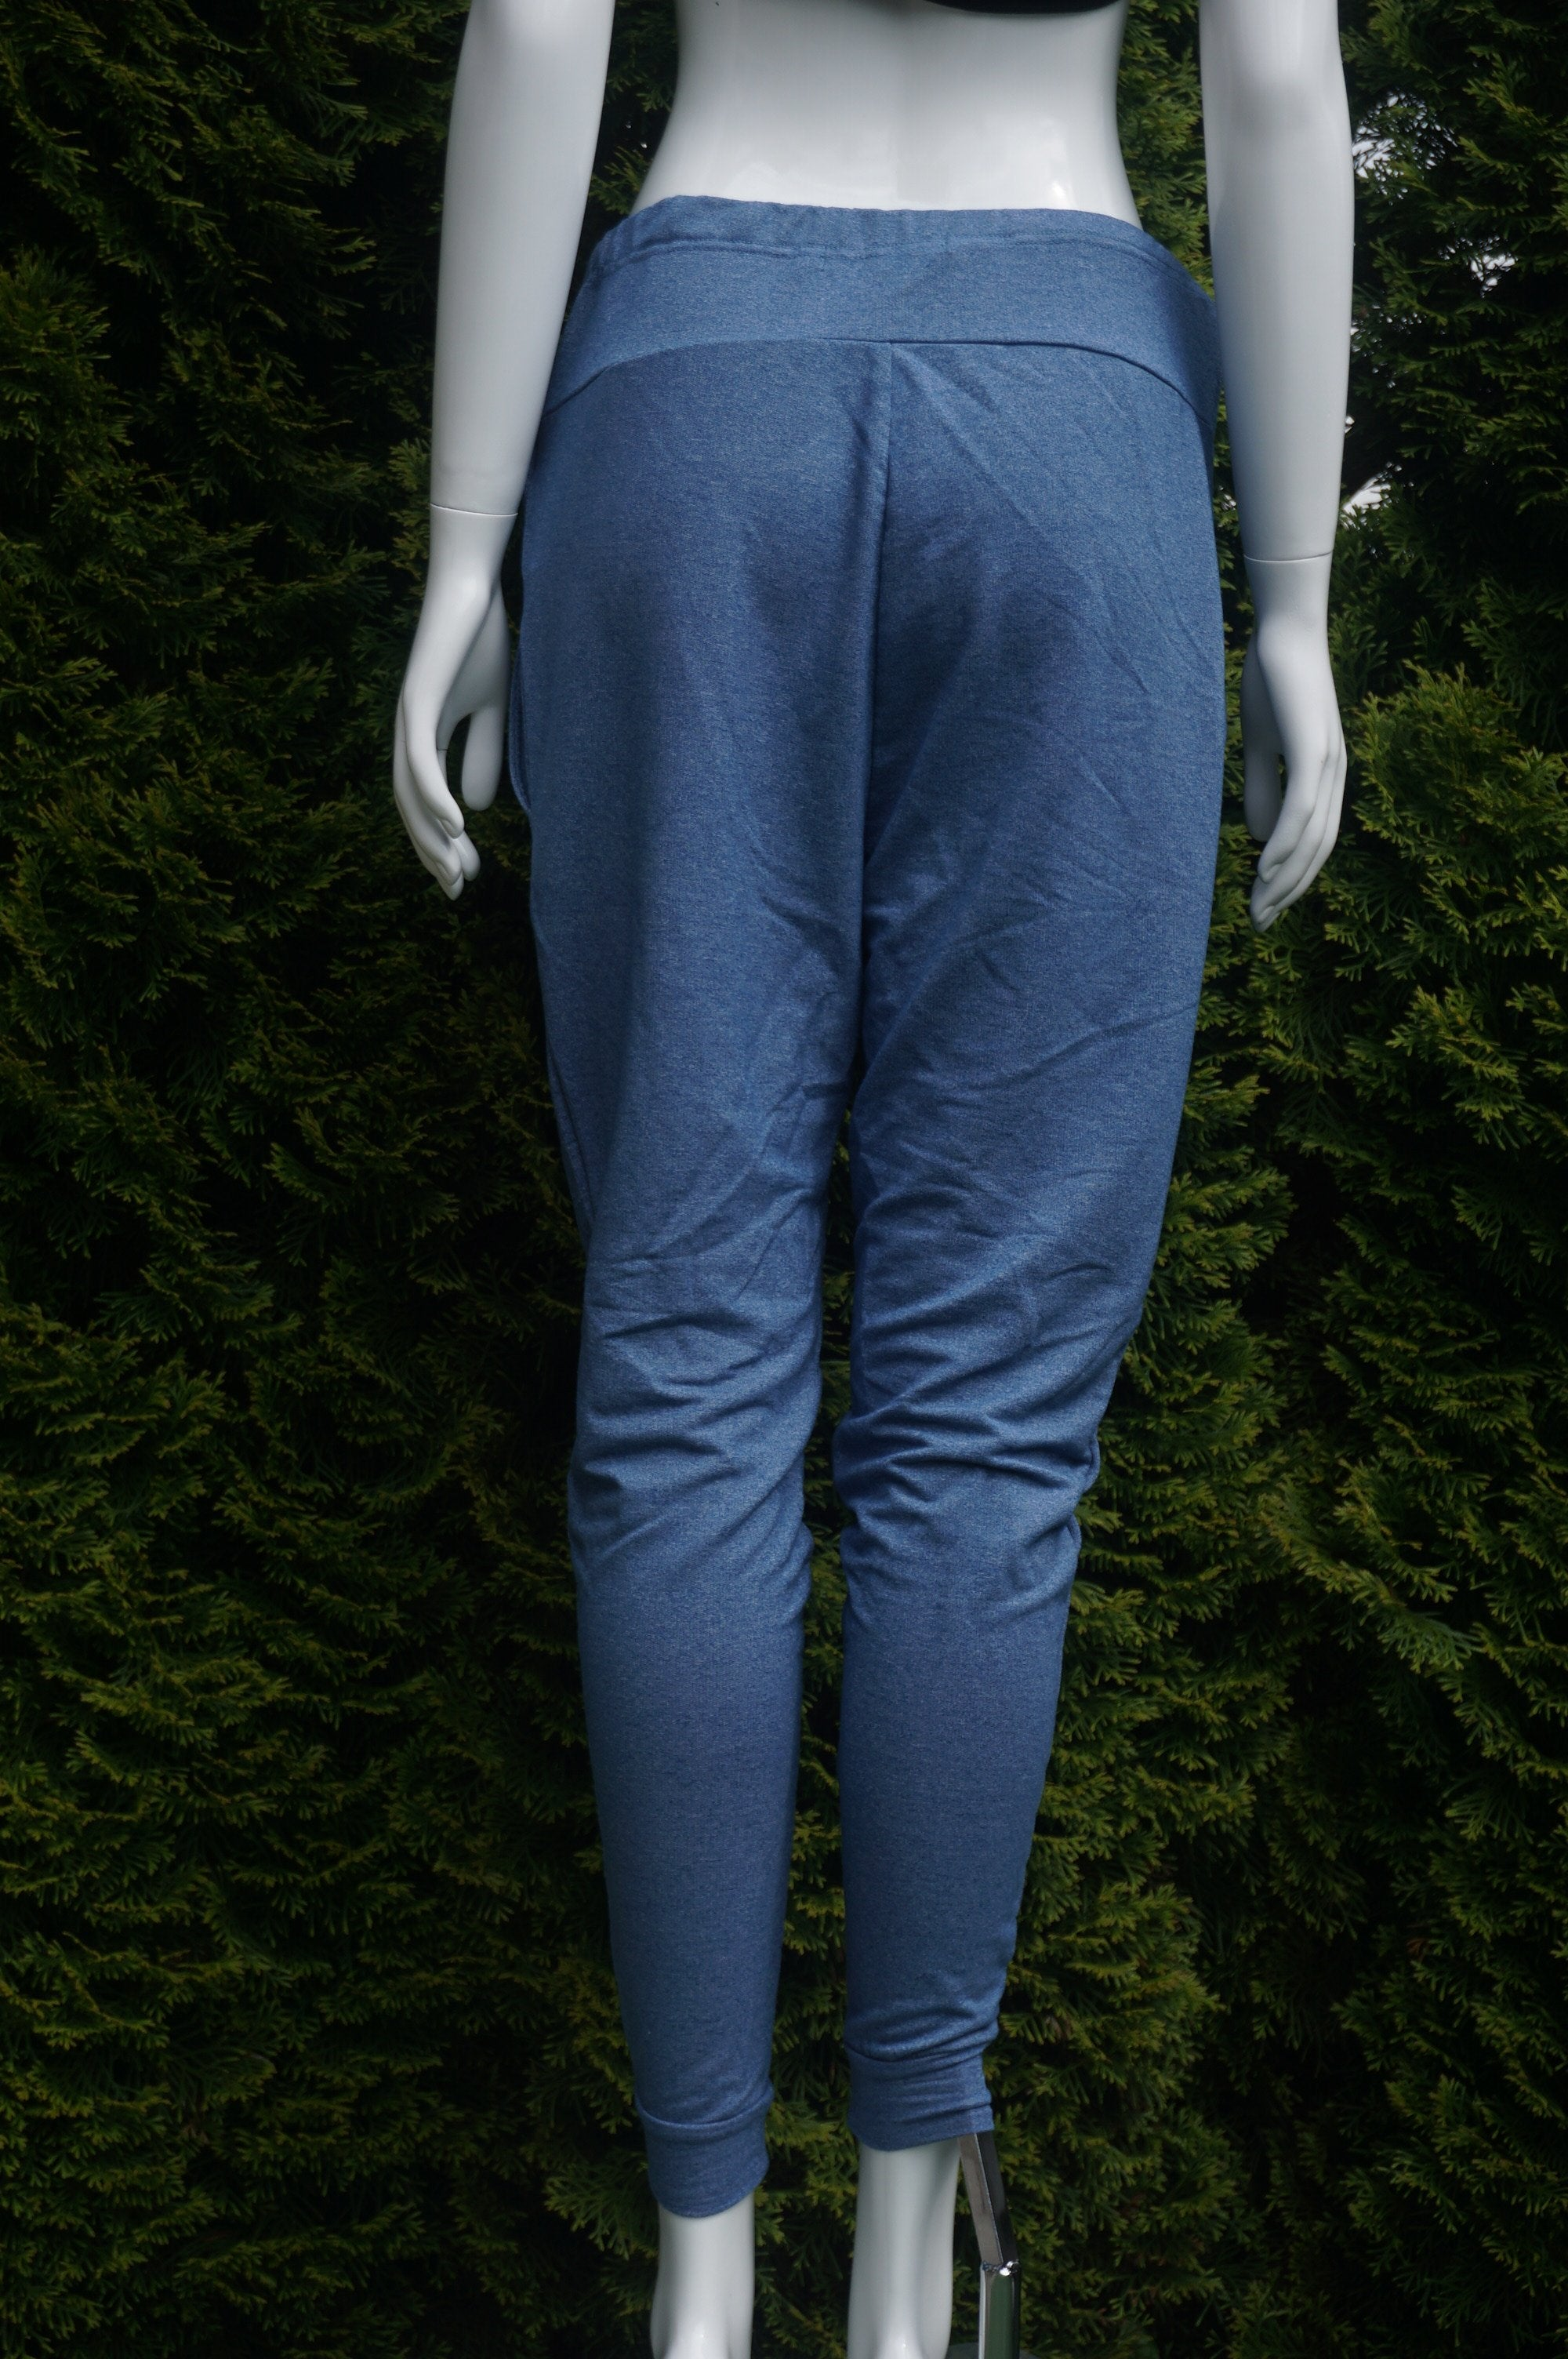 Elli Share Super Comfy Maternity Sweatpants, Maximum comfortable sweatpants with adjustable strap for the growing belly as well as excitement!, Blue, 61.3% Polyester, 34.8% Viscose, 3.9% Spandex, women's Mom & Baby, women's Blue Mom & Baby, Elli Share women's Mom & Baby, women's maternity sweatpants, maternity pants, pregnency clothes, pregnency sweatpants,